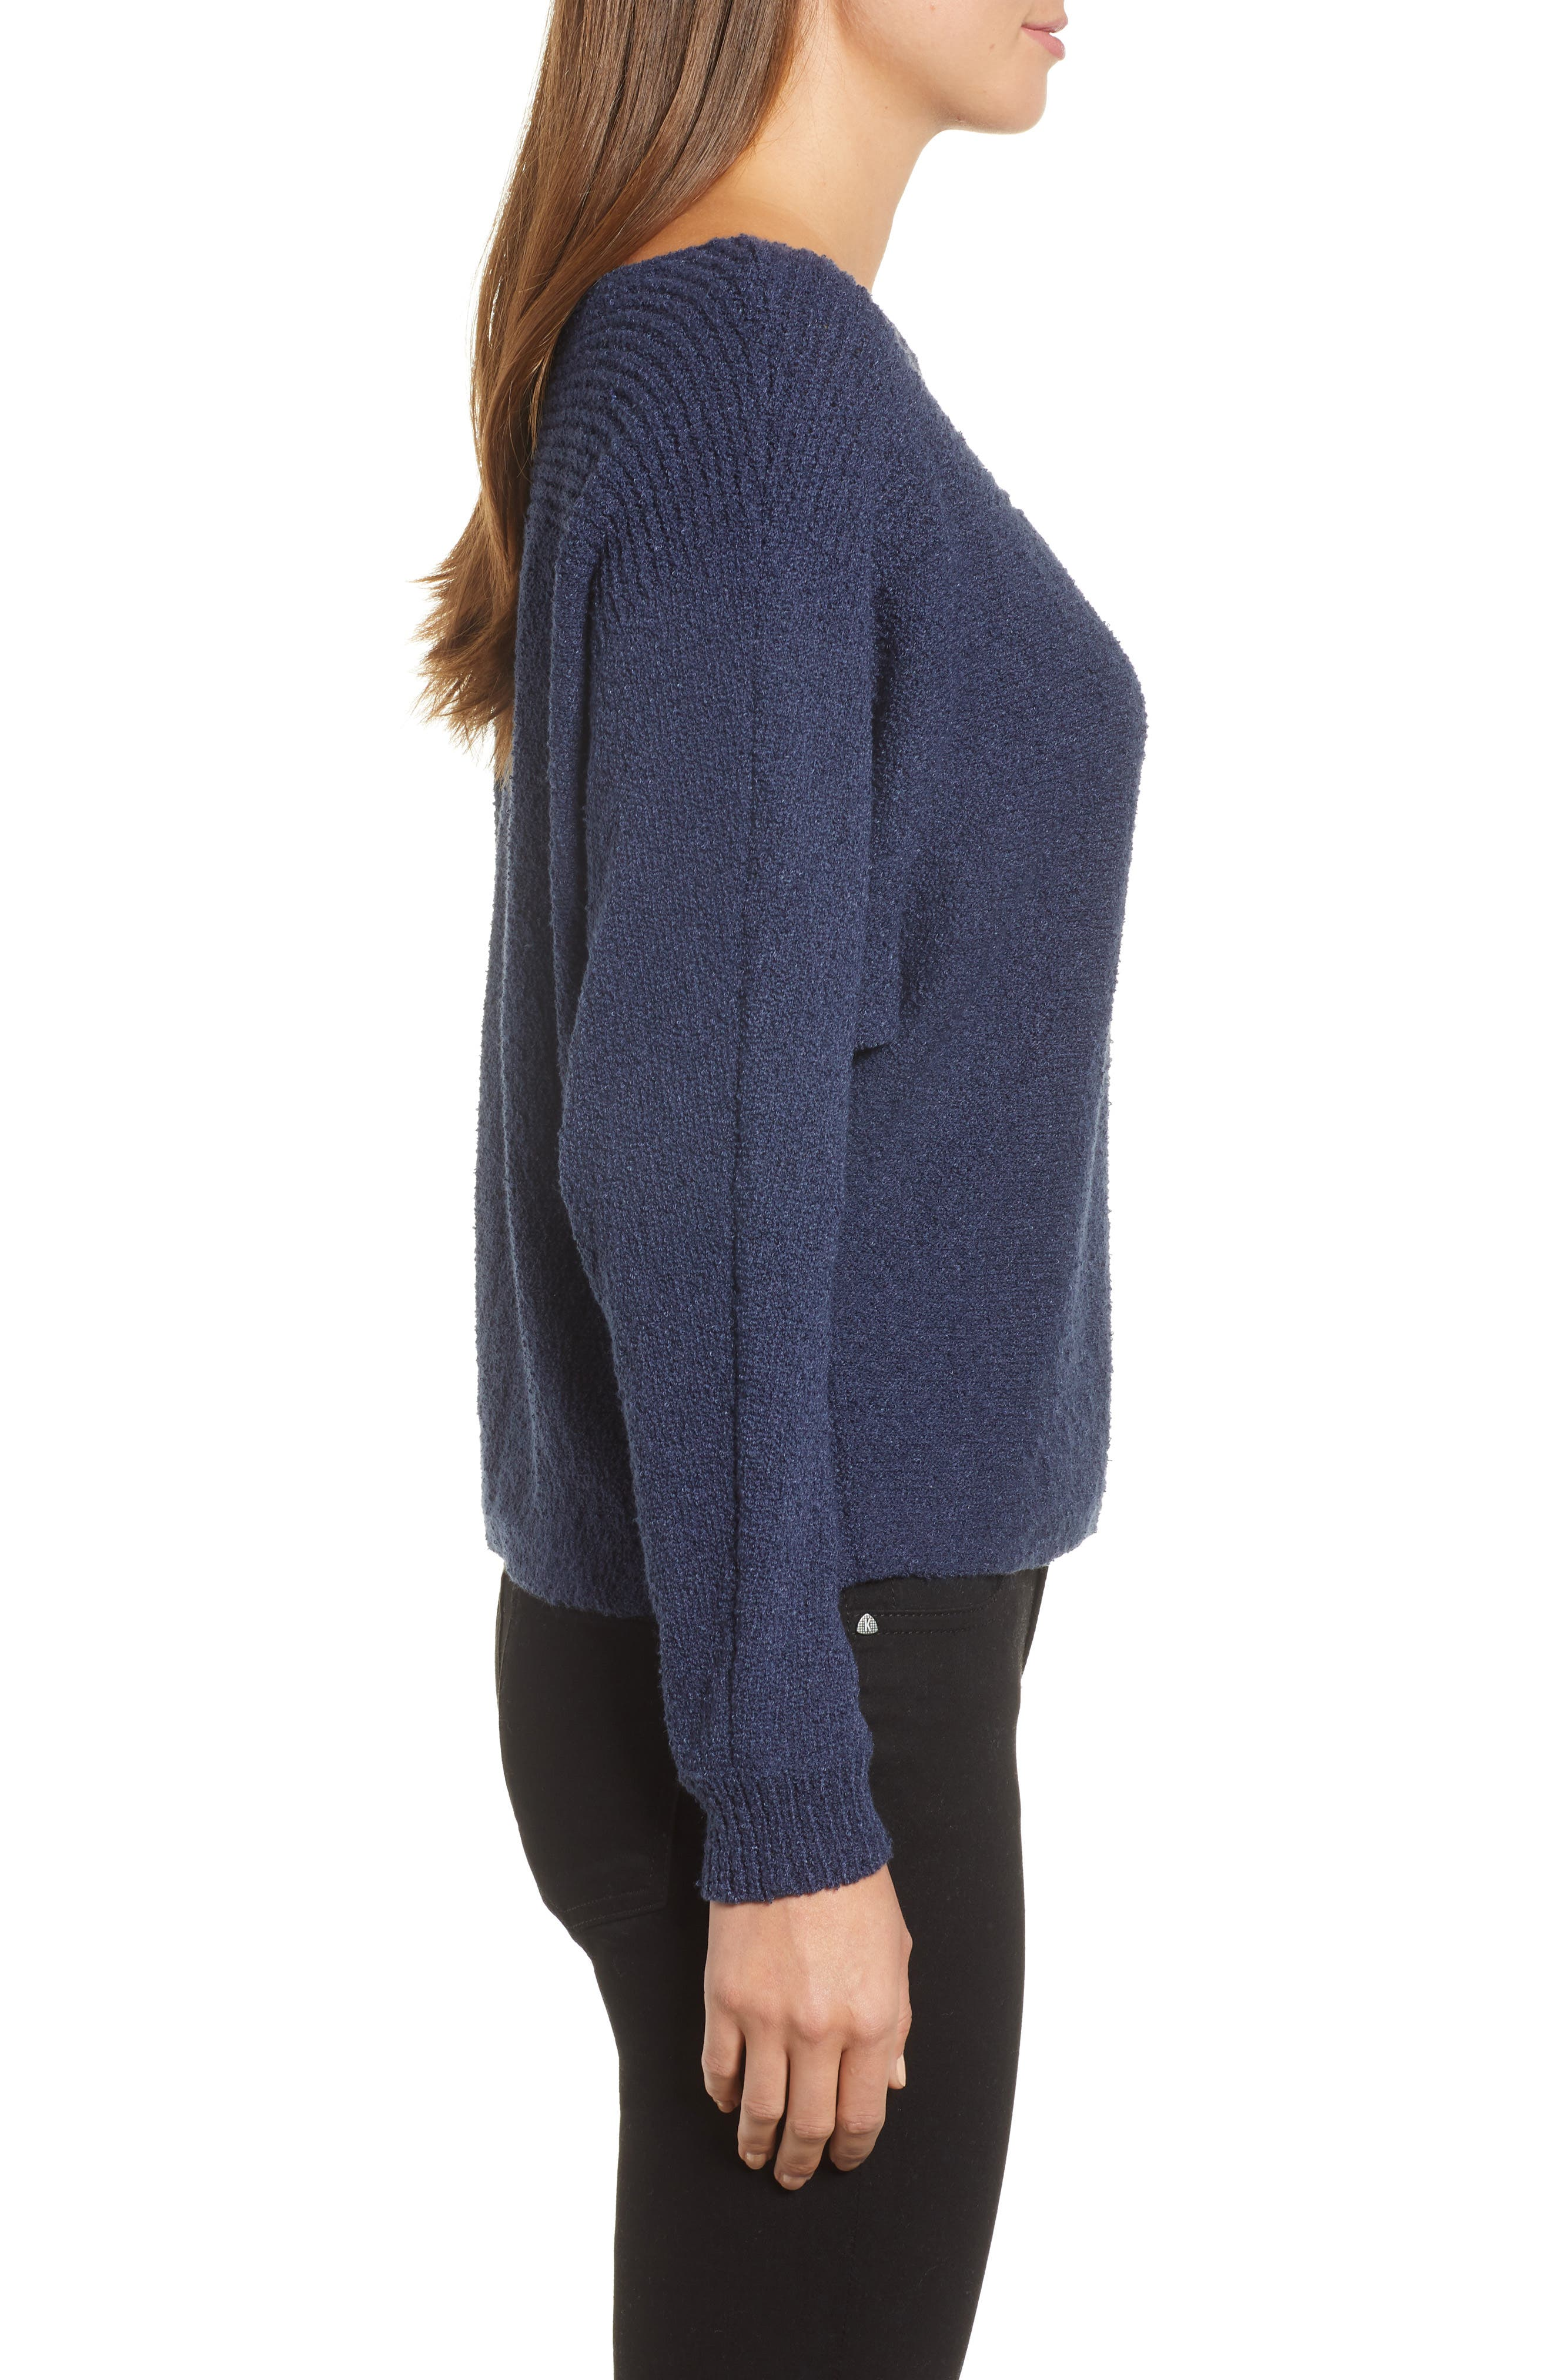 Calson<sup>®</sup> Dolman Sleeve Sweater,                             Alternate thumbnail 3, color,                             410